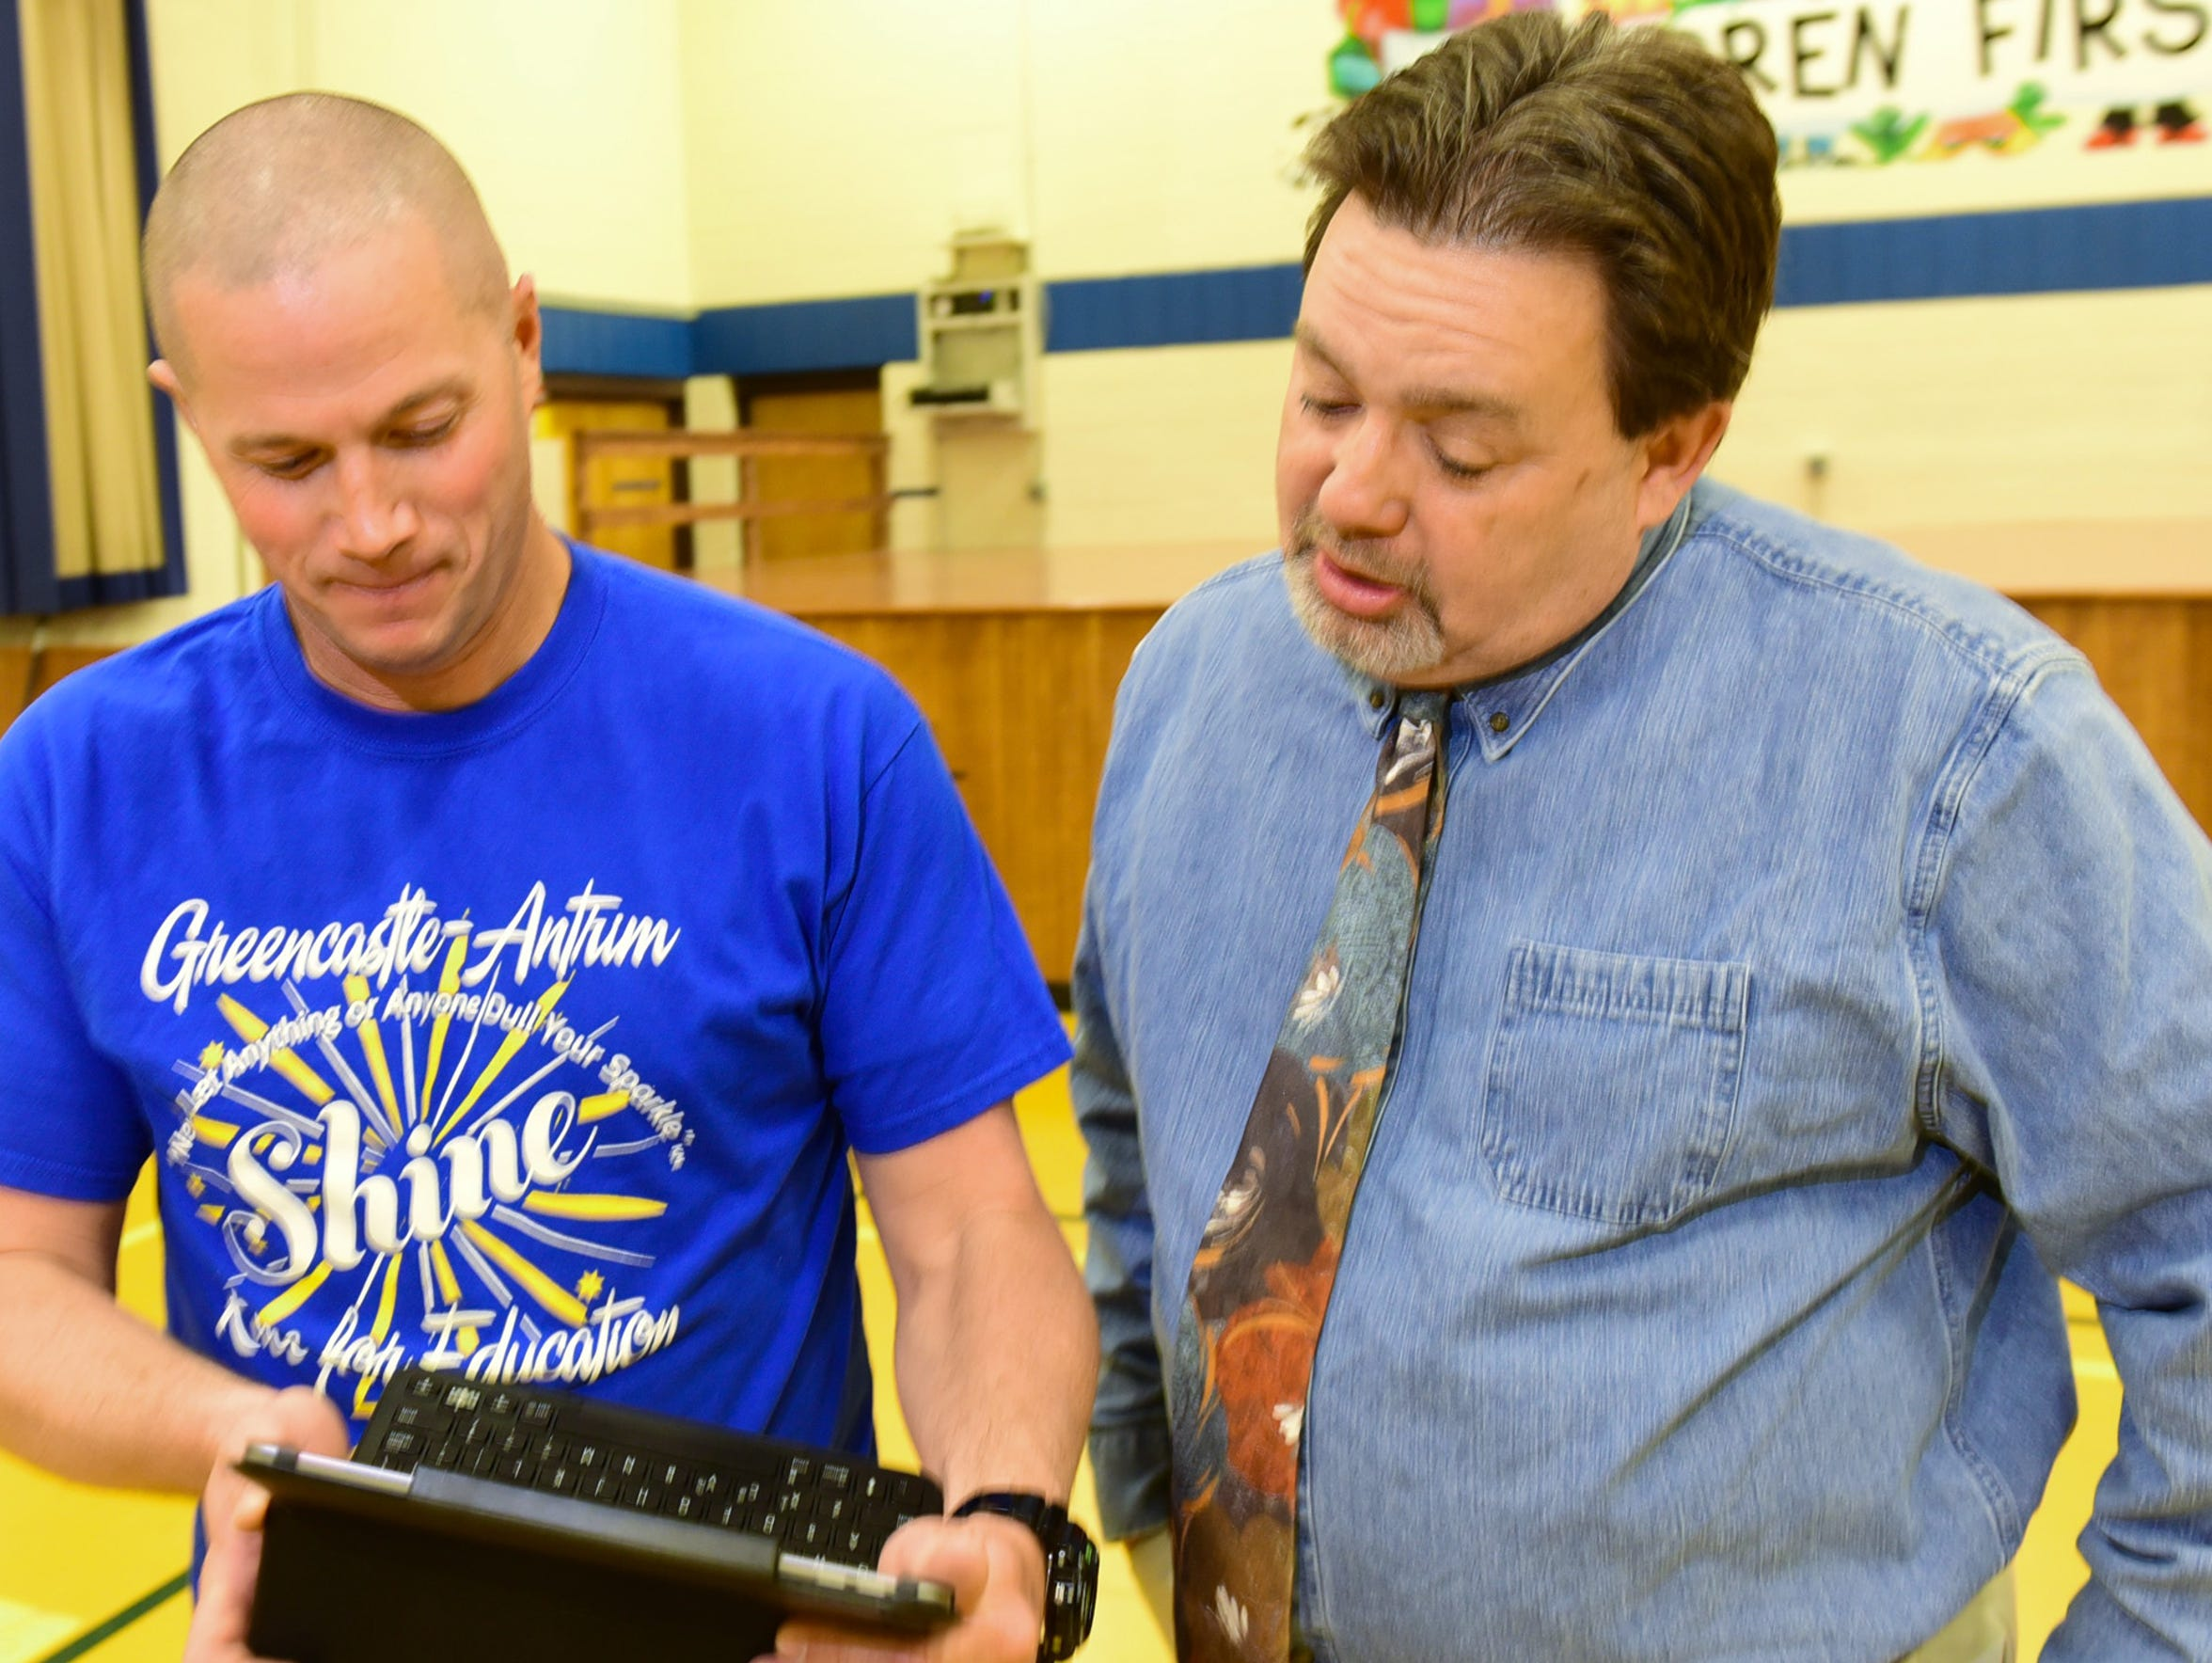 Greg Hoover, right, Greencastle-Antrim School District